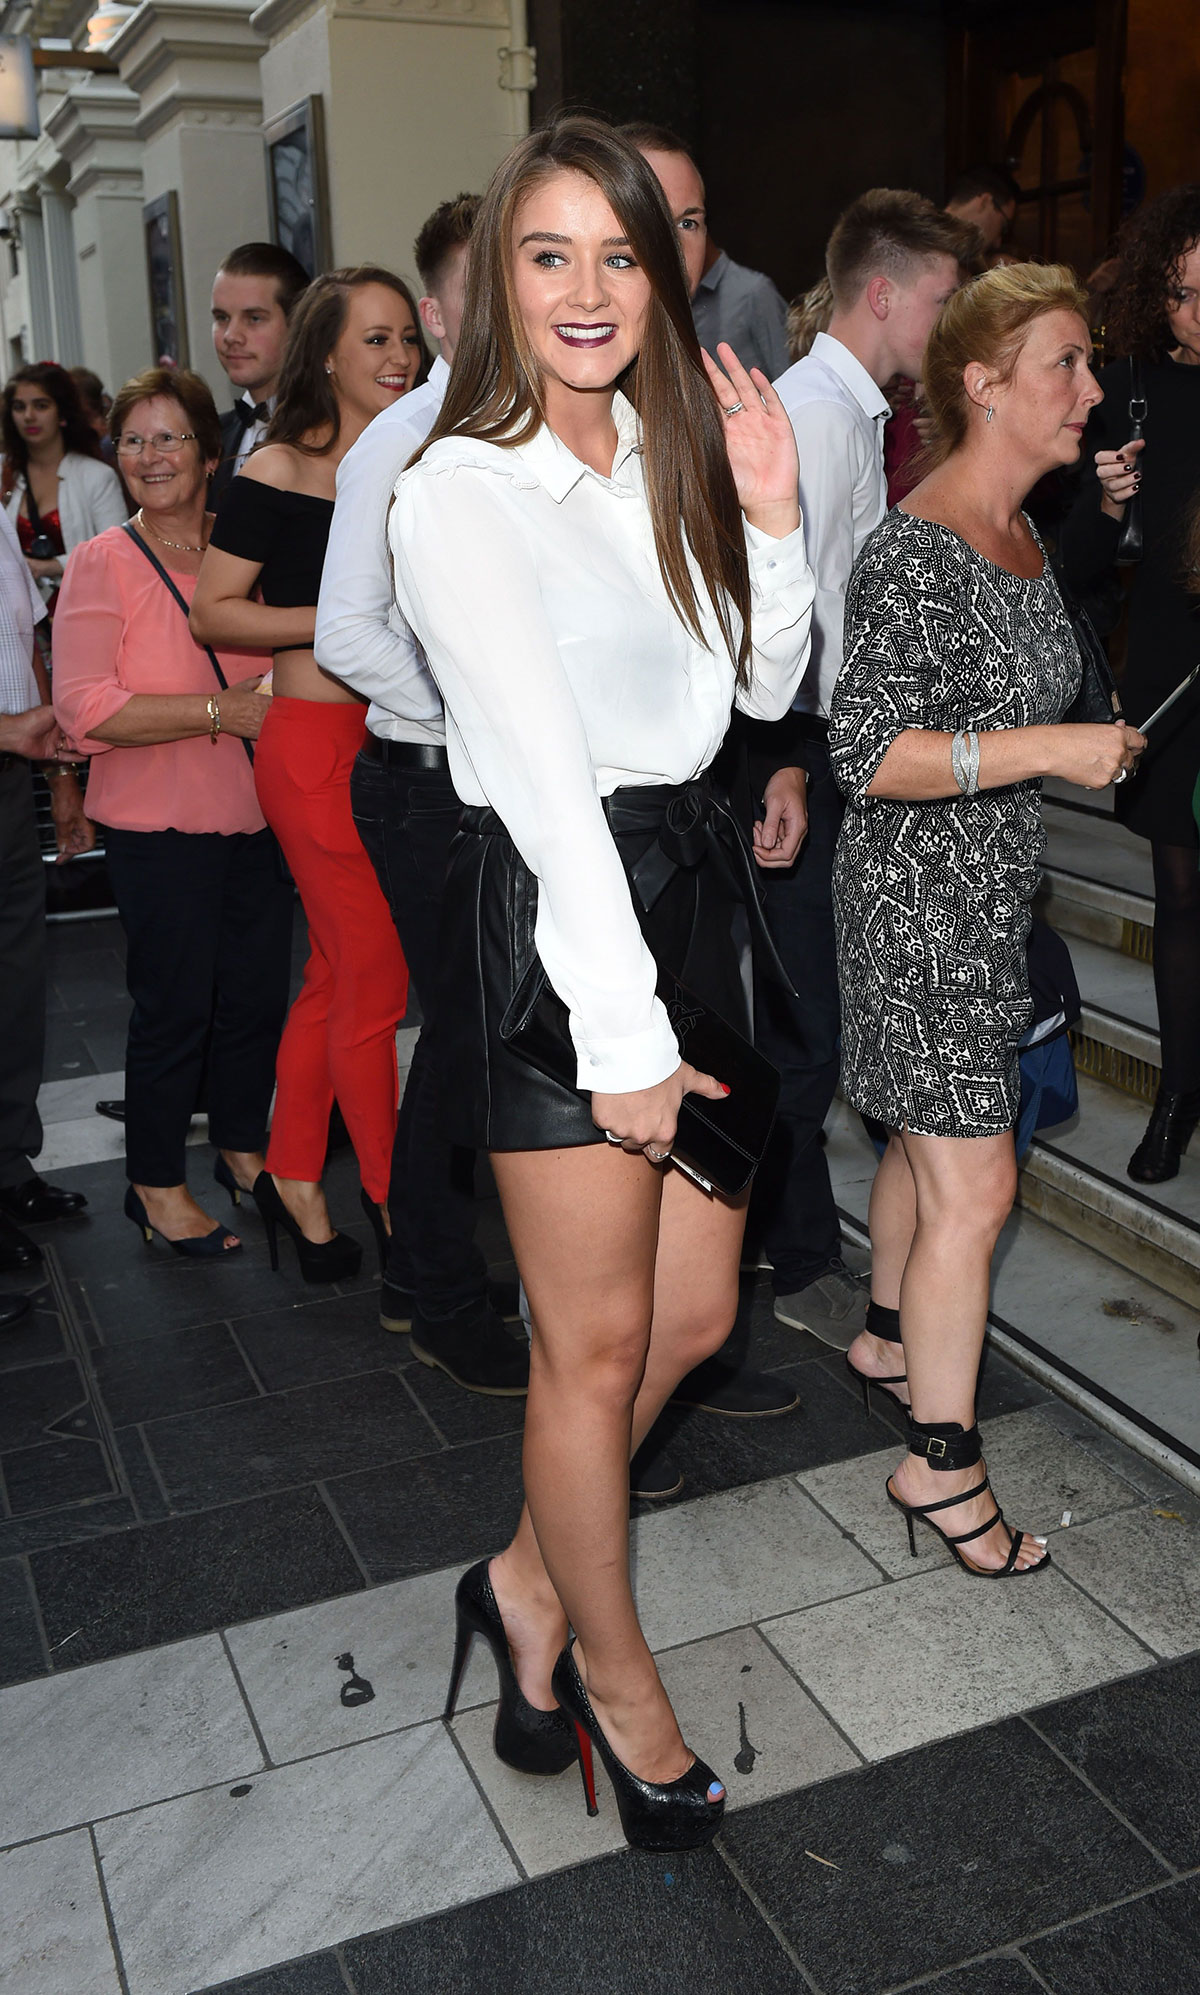 Brooke Vincent attends Lord Of The Dance Dangerous Games